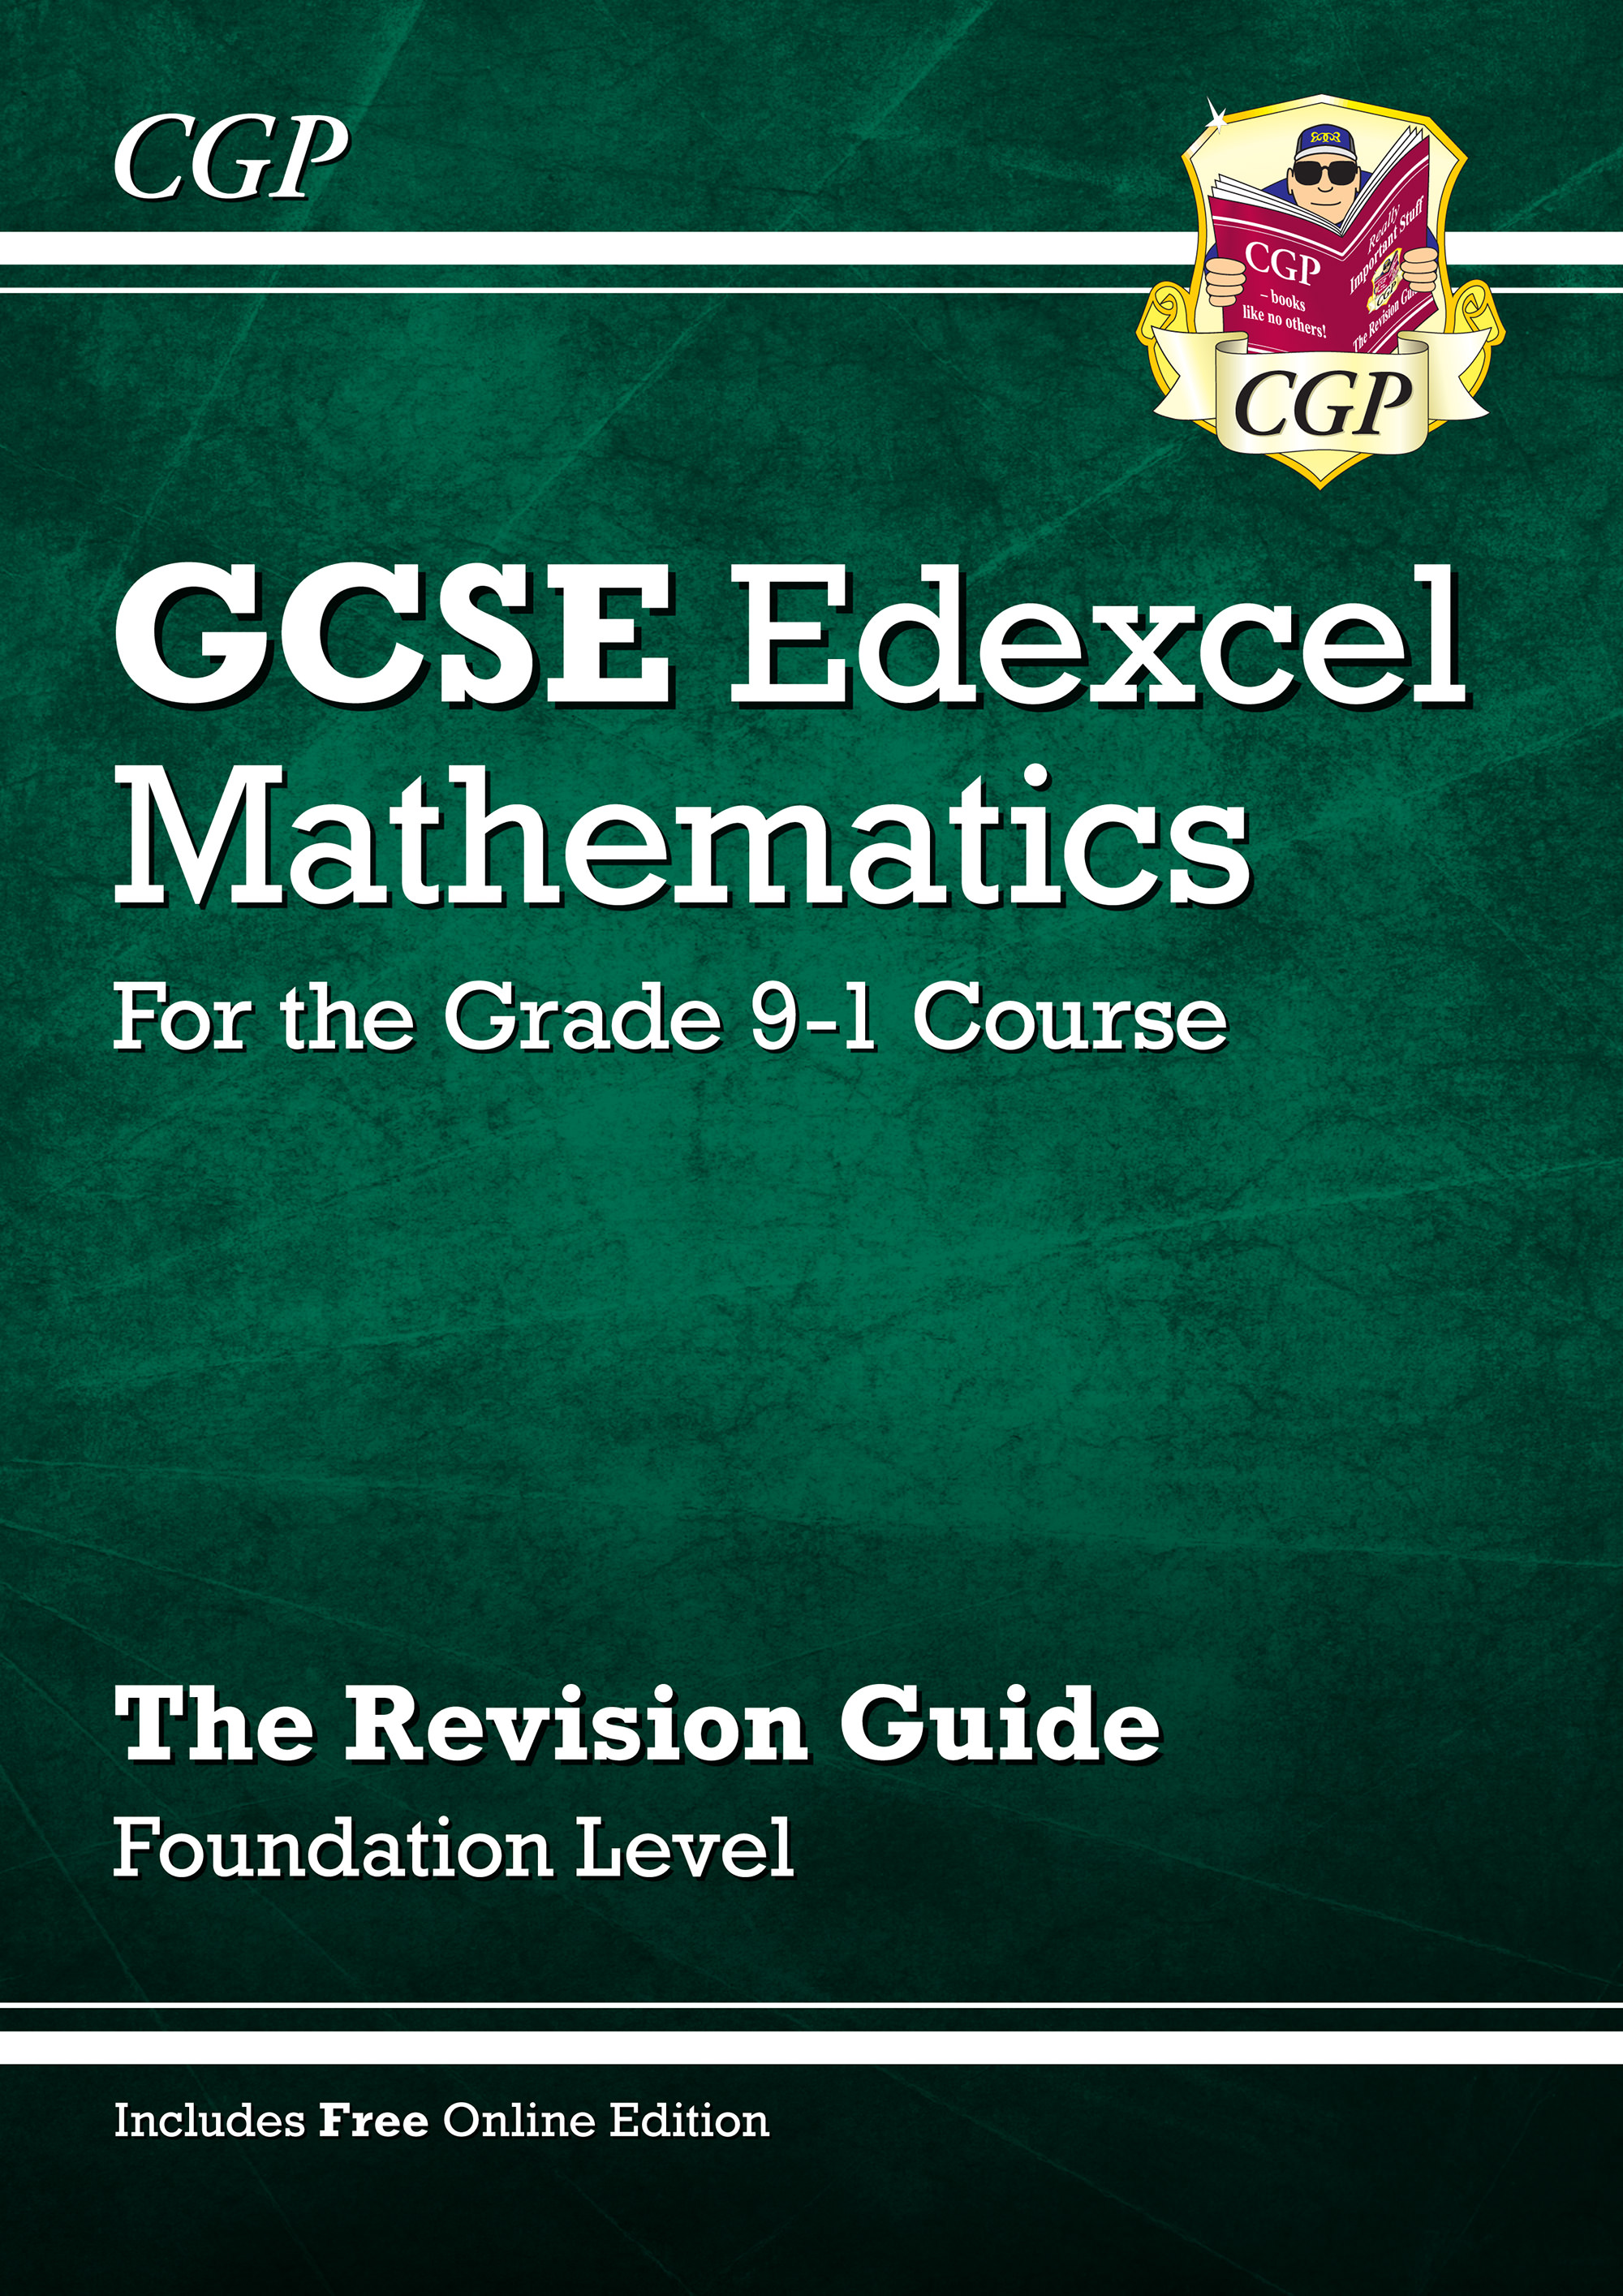 MXFR46 - GCSE Maths Edexcel Revision Guide: Foundation - for the Grade 9-1 Course (with Online Editi